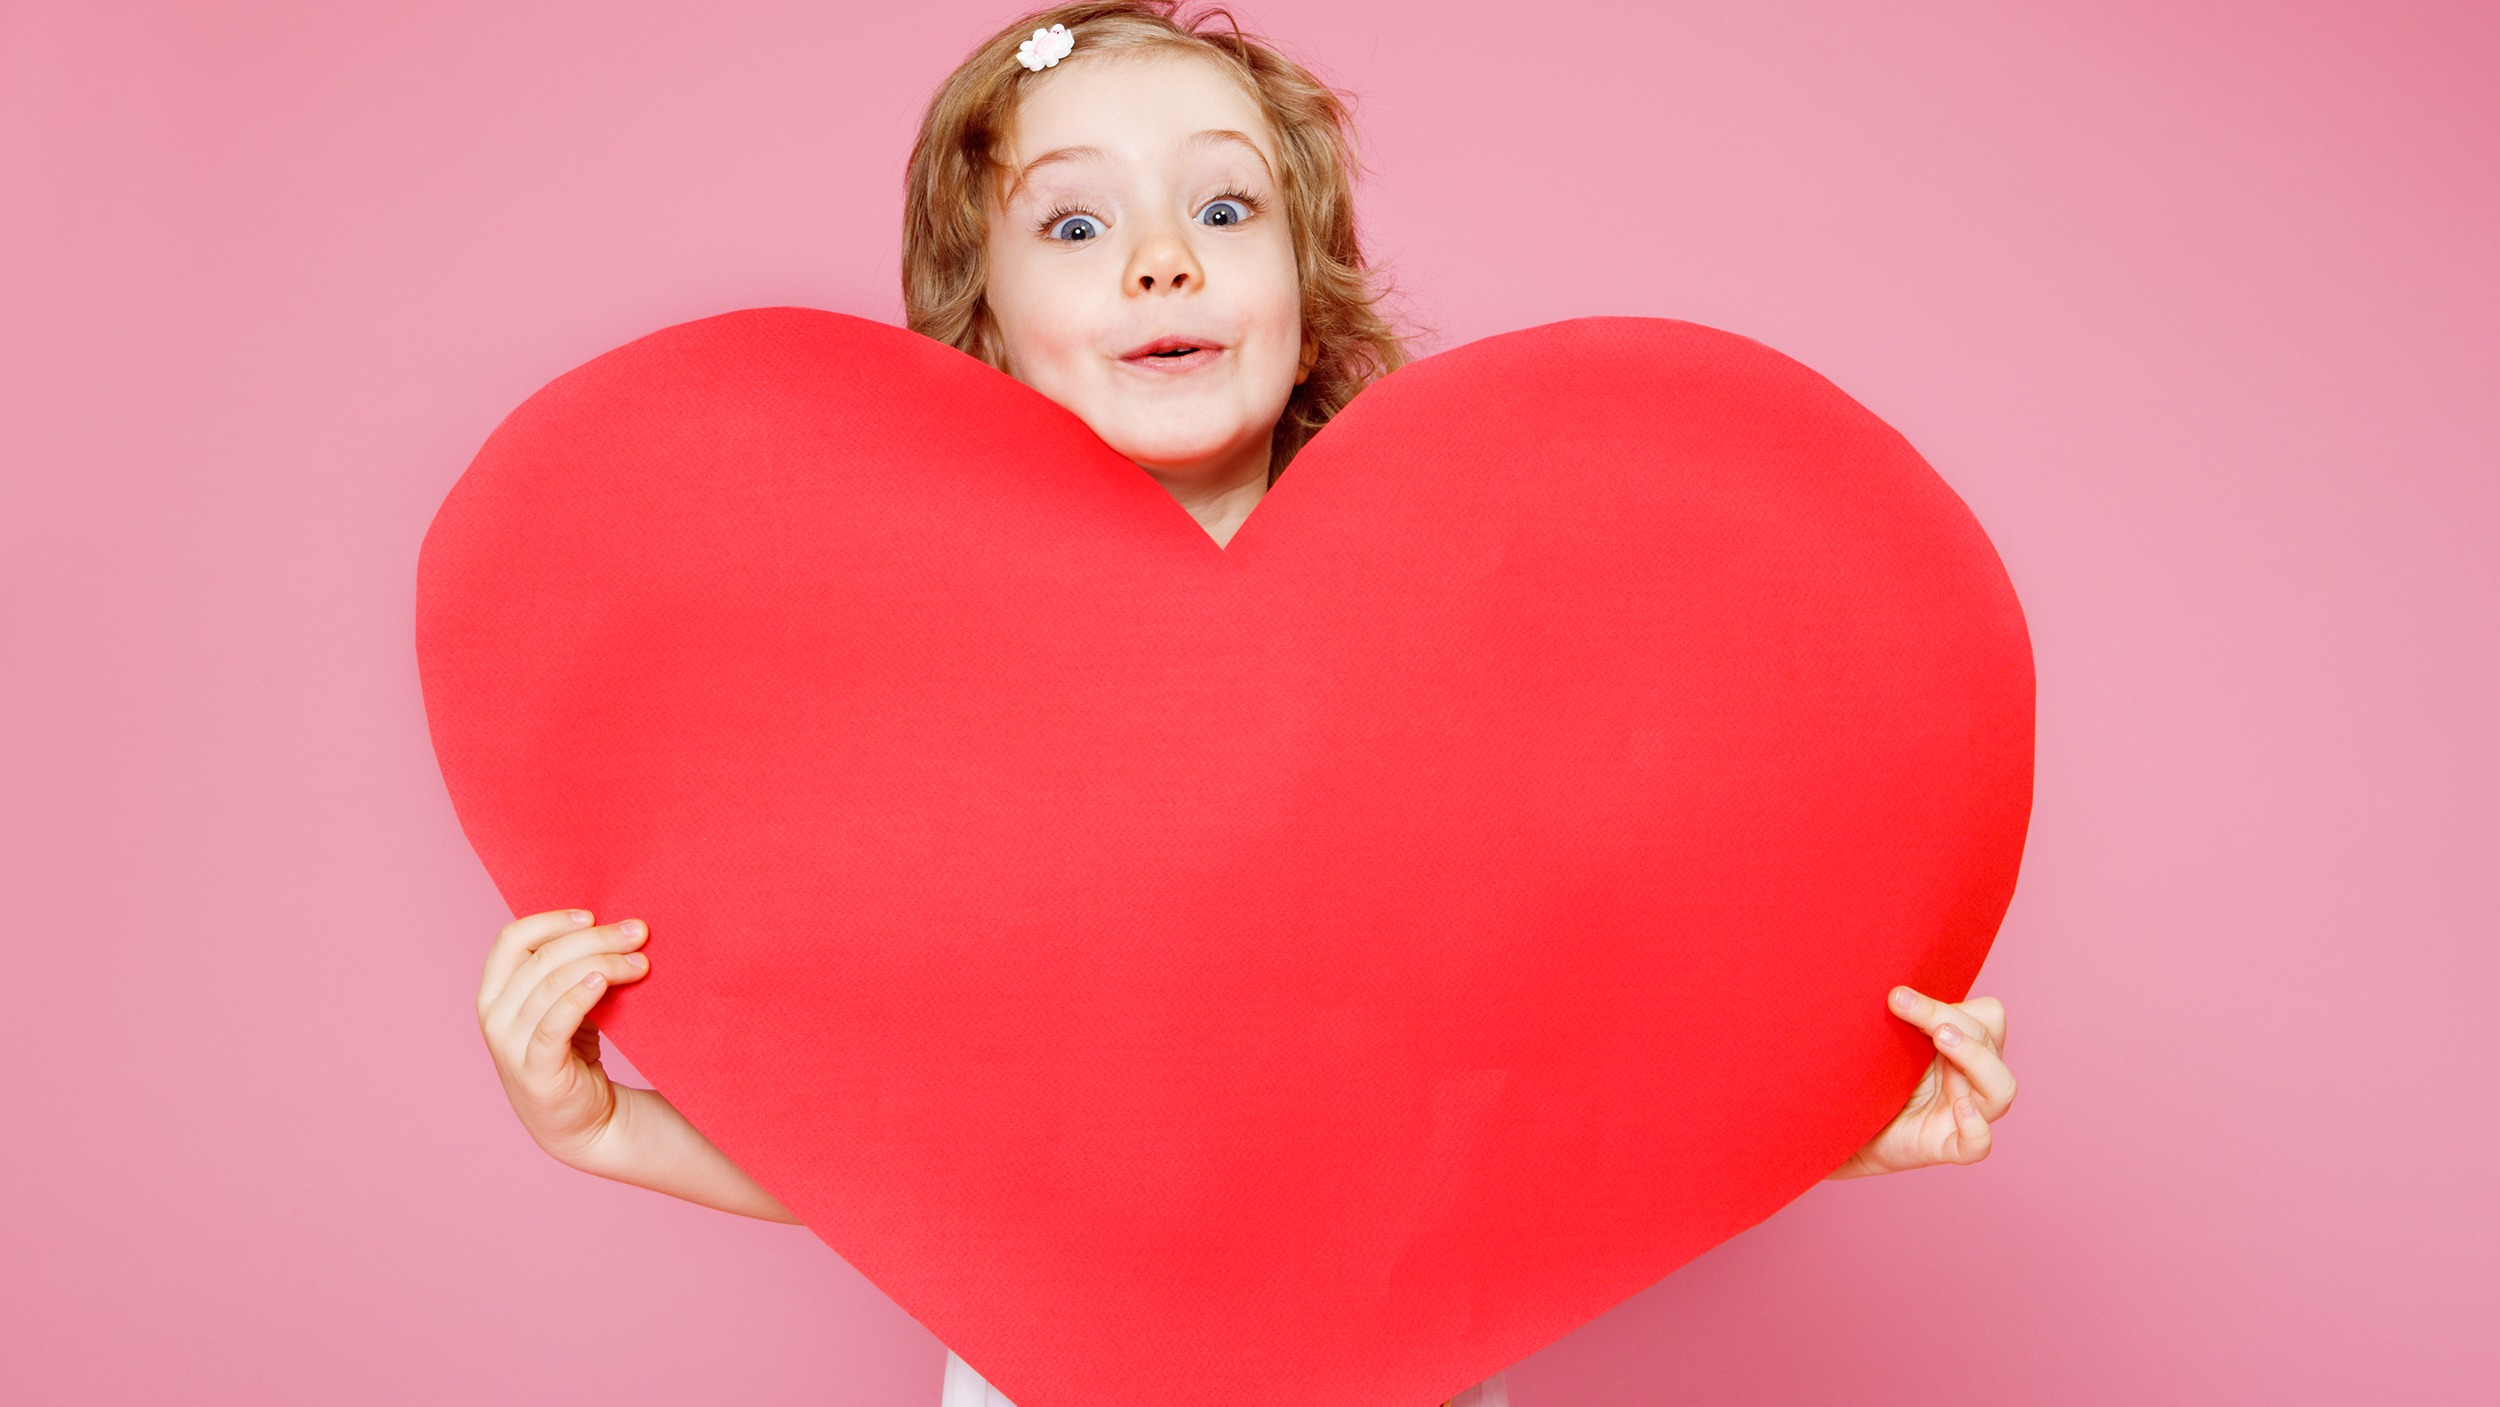 Child holding a large heart